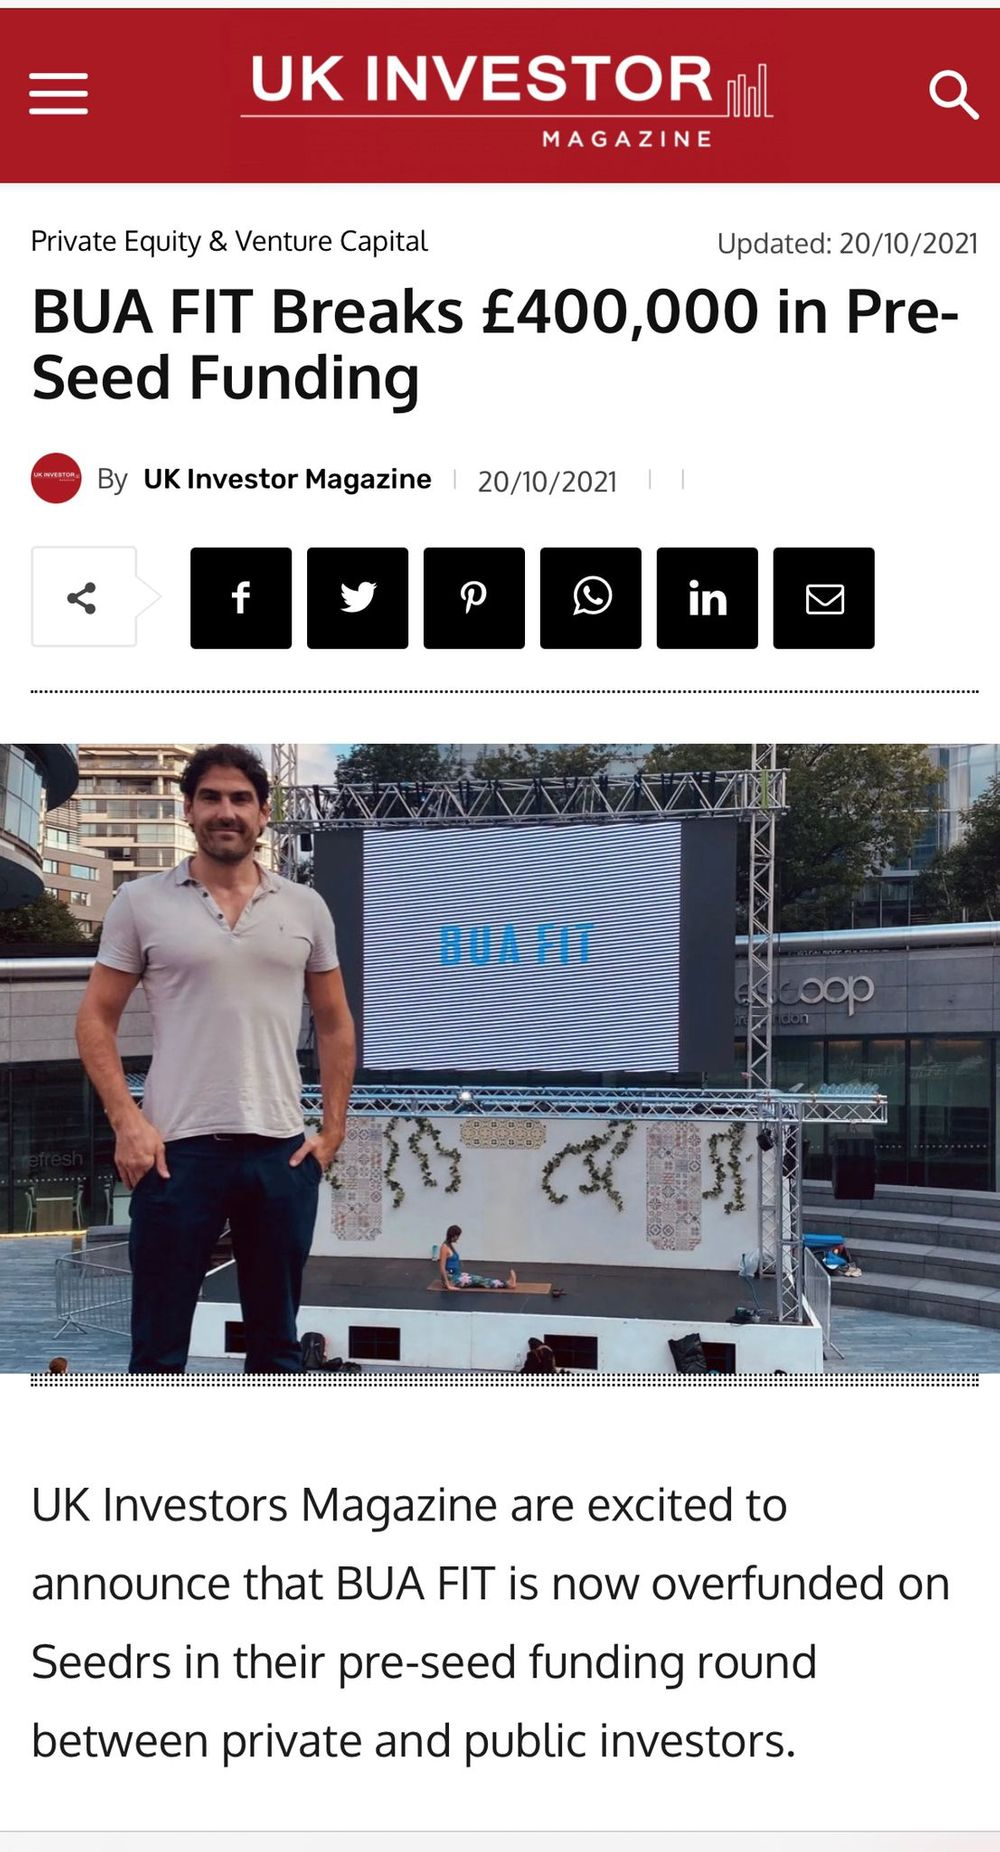 We're delighted to have a write-up in the UK Investor Magazine detailing everything you need to know about our latest milestones.   Get the inside line now 👉 [HERE](https://ukinvestormagazine.co.uk/bua-fit-breaks-400000-in-pre-seed-funding)   💙 Thank you for all your support 💙